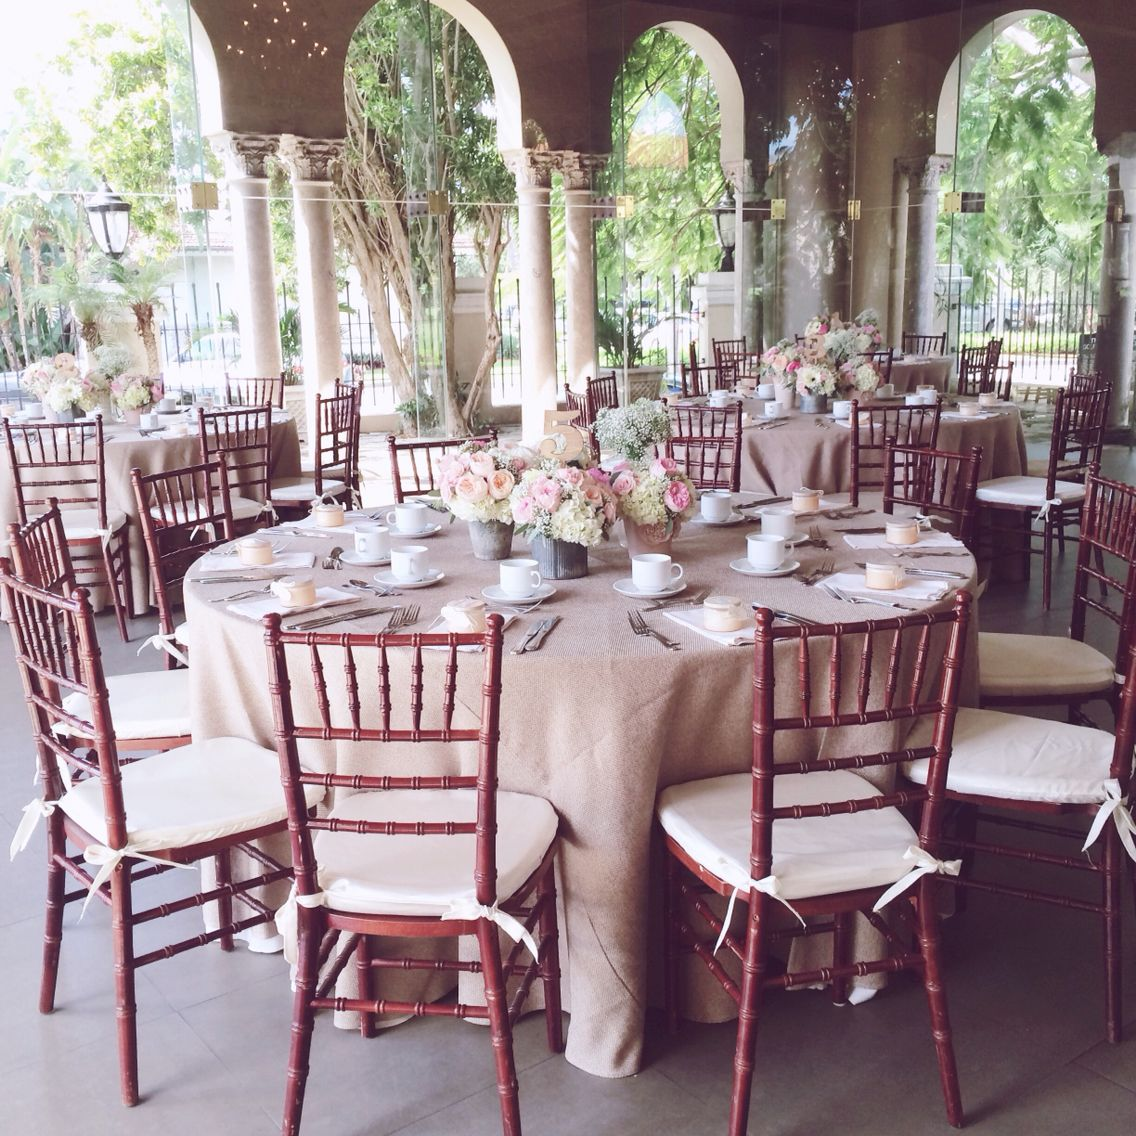 Our Mahogany Chiavari Chairs Set Up For Today S Special Rustic Vintage Shower Chairsforrent Chi With Images Floral Centerpieces Urban Modern Wedding Rustic Centerpieces